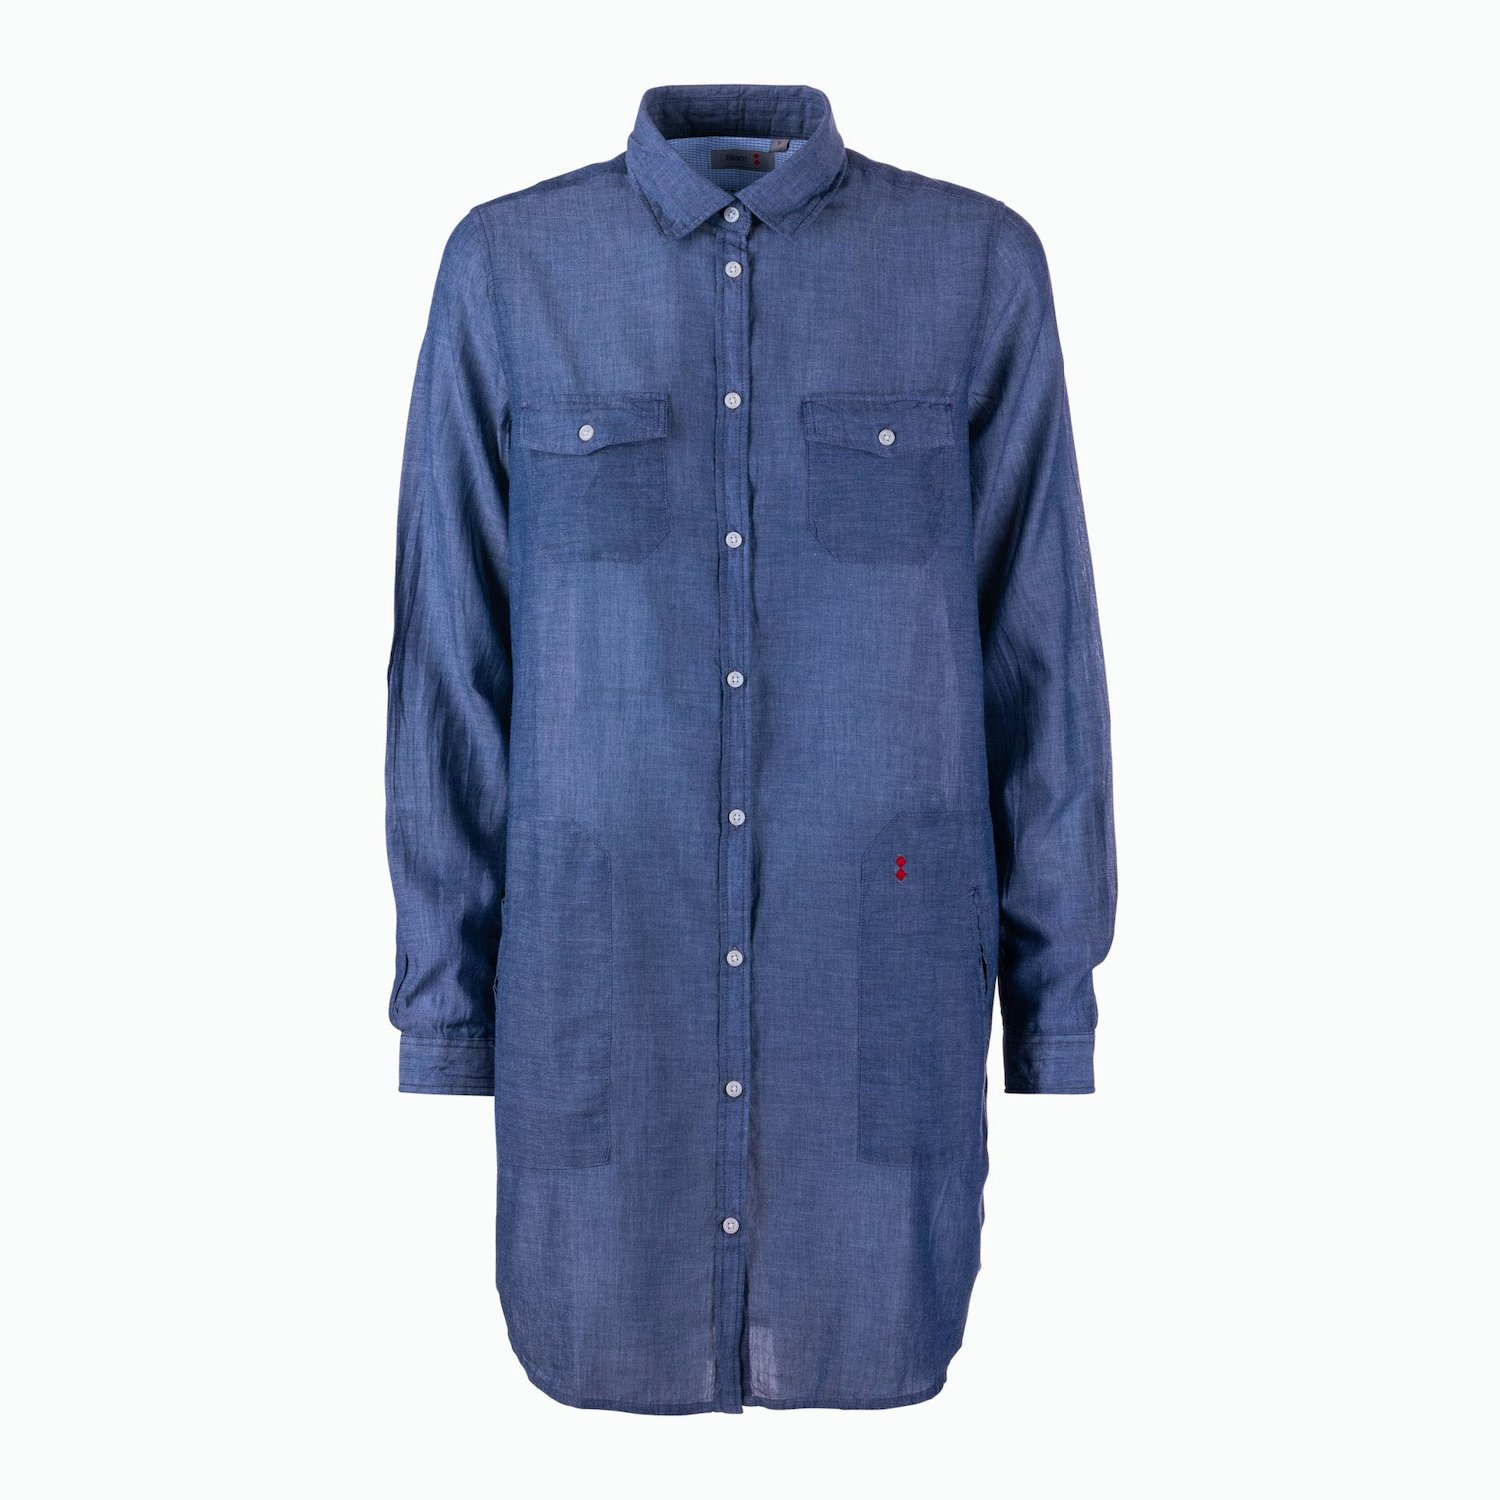 C06 Dress - Mittel Denim